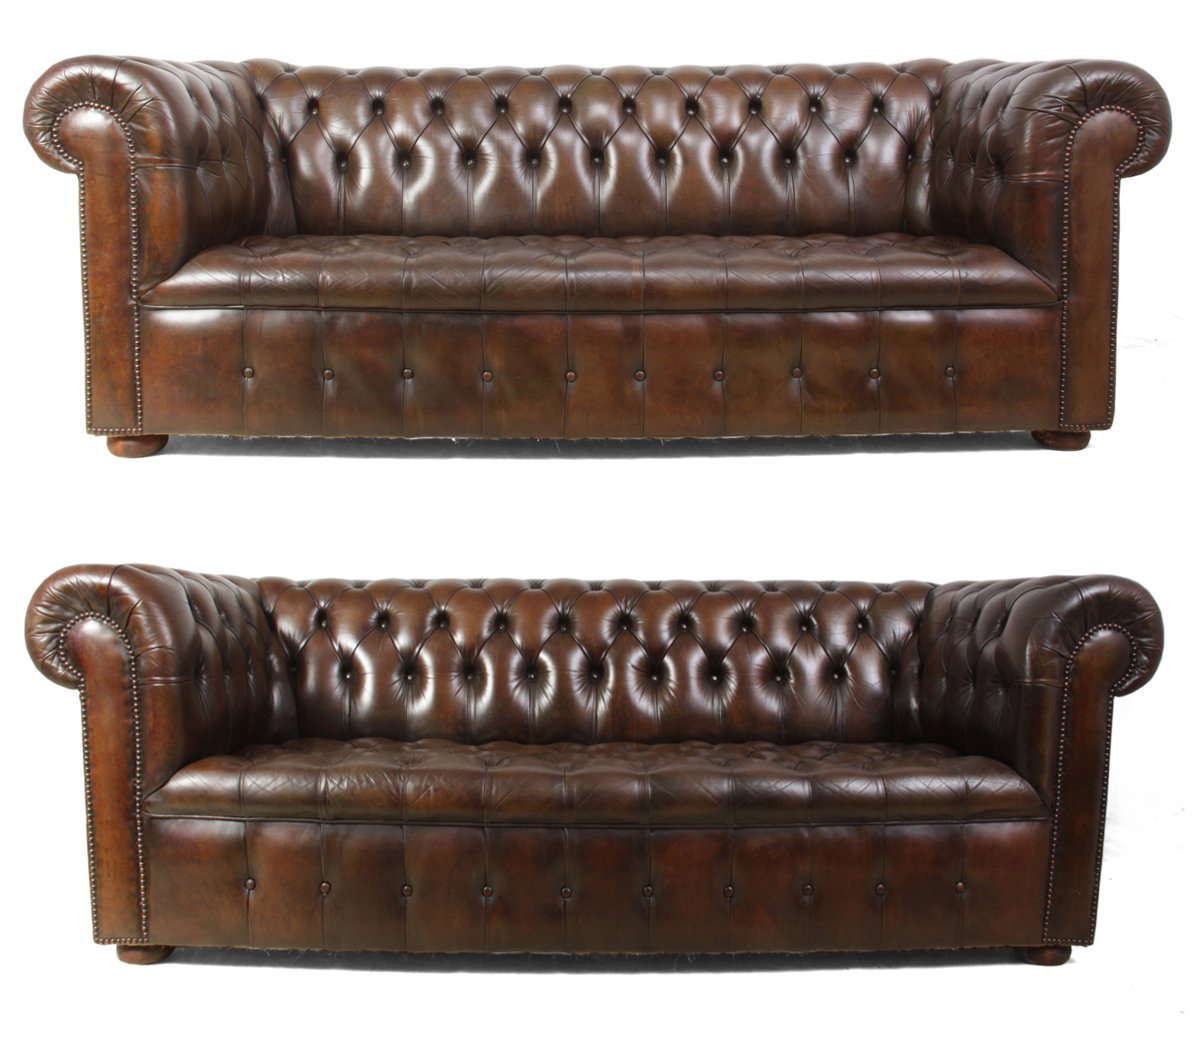 vintage brown leather chesterfield sofas set of 2 for. Black Bedroom Furniture Sets. Home Design Ideas